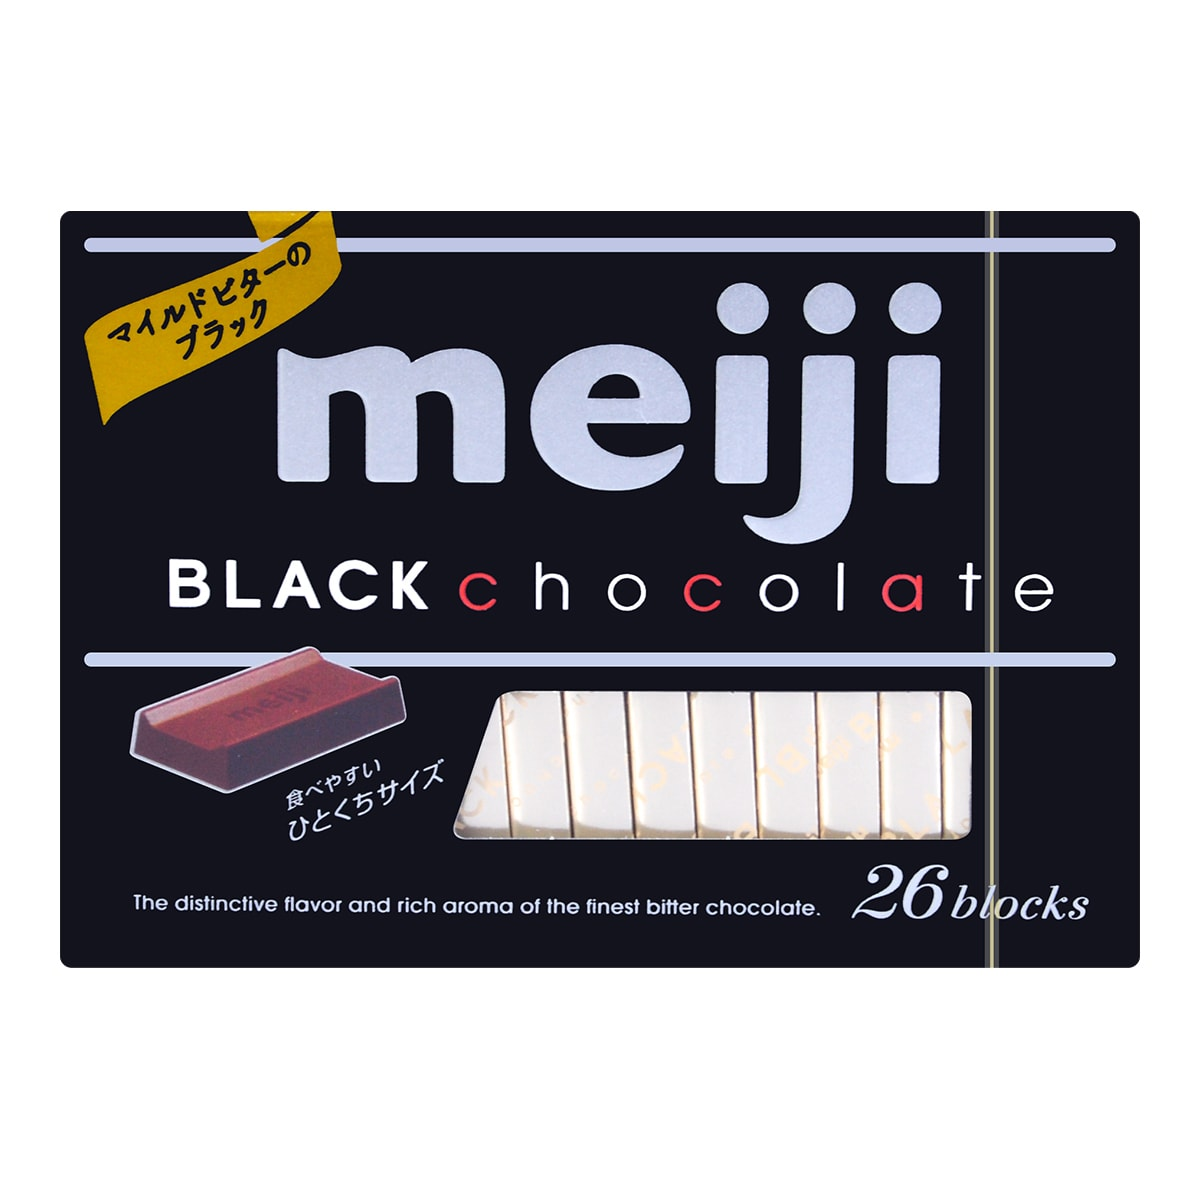 MEIJI Black Chocolate 26 blocks